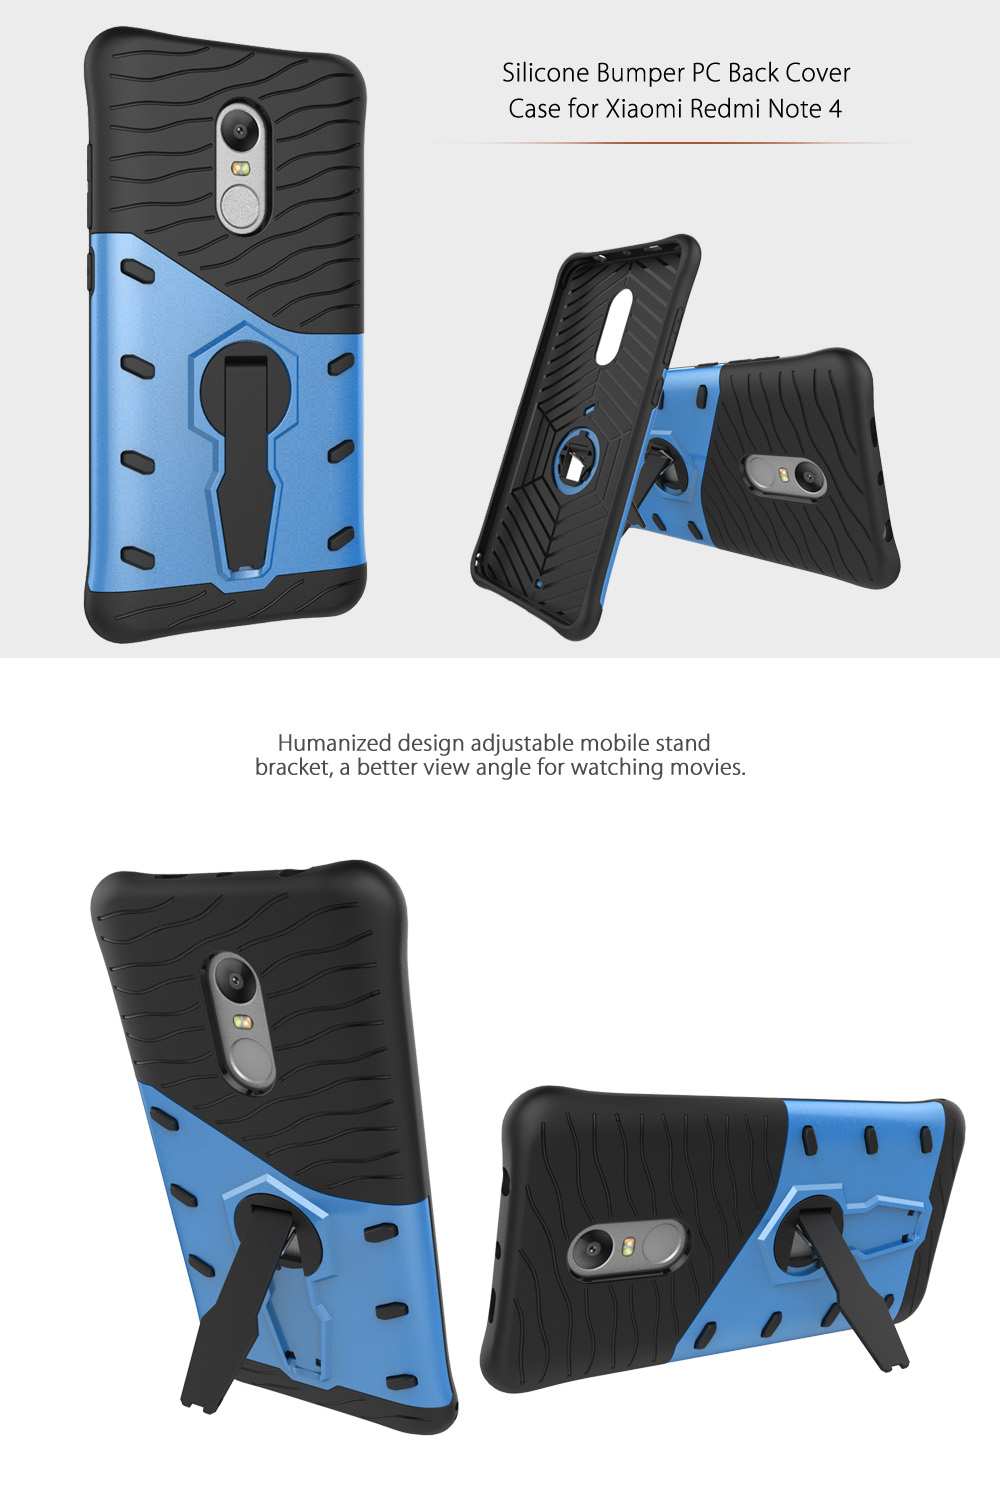 Silicone Bumper PC Protective Back Cover Case for Xiaomi Redmi Note 4 with Phone Stand Holder